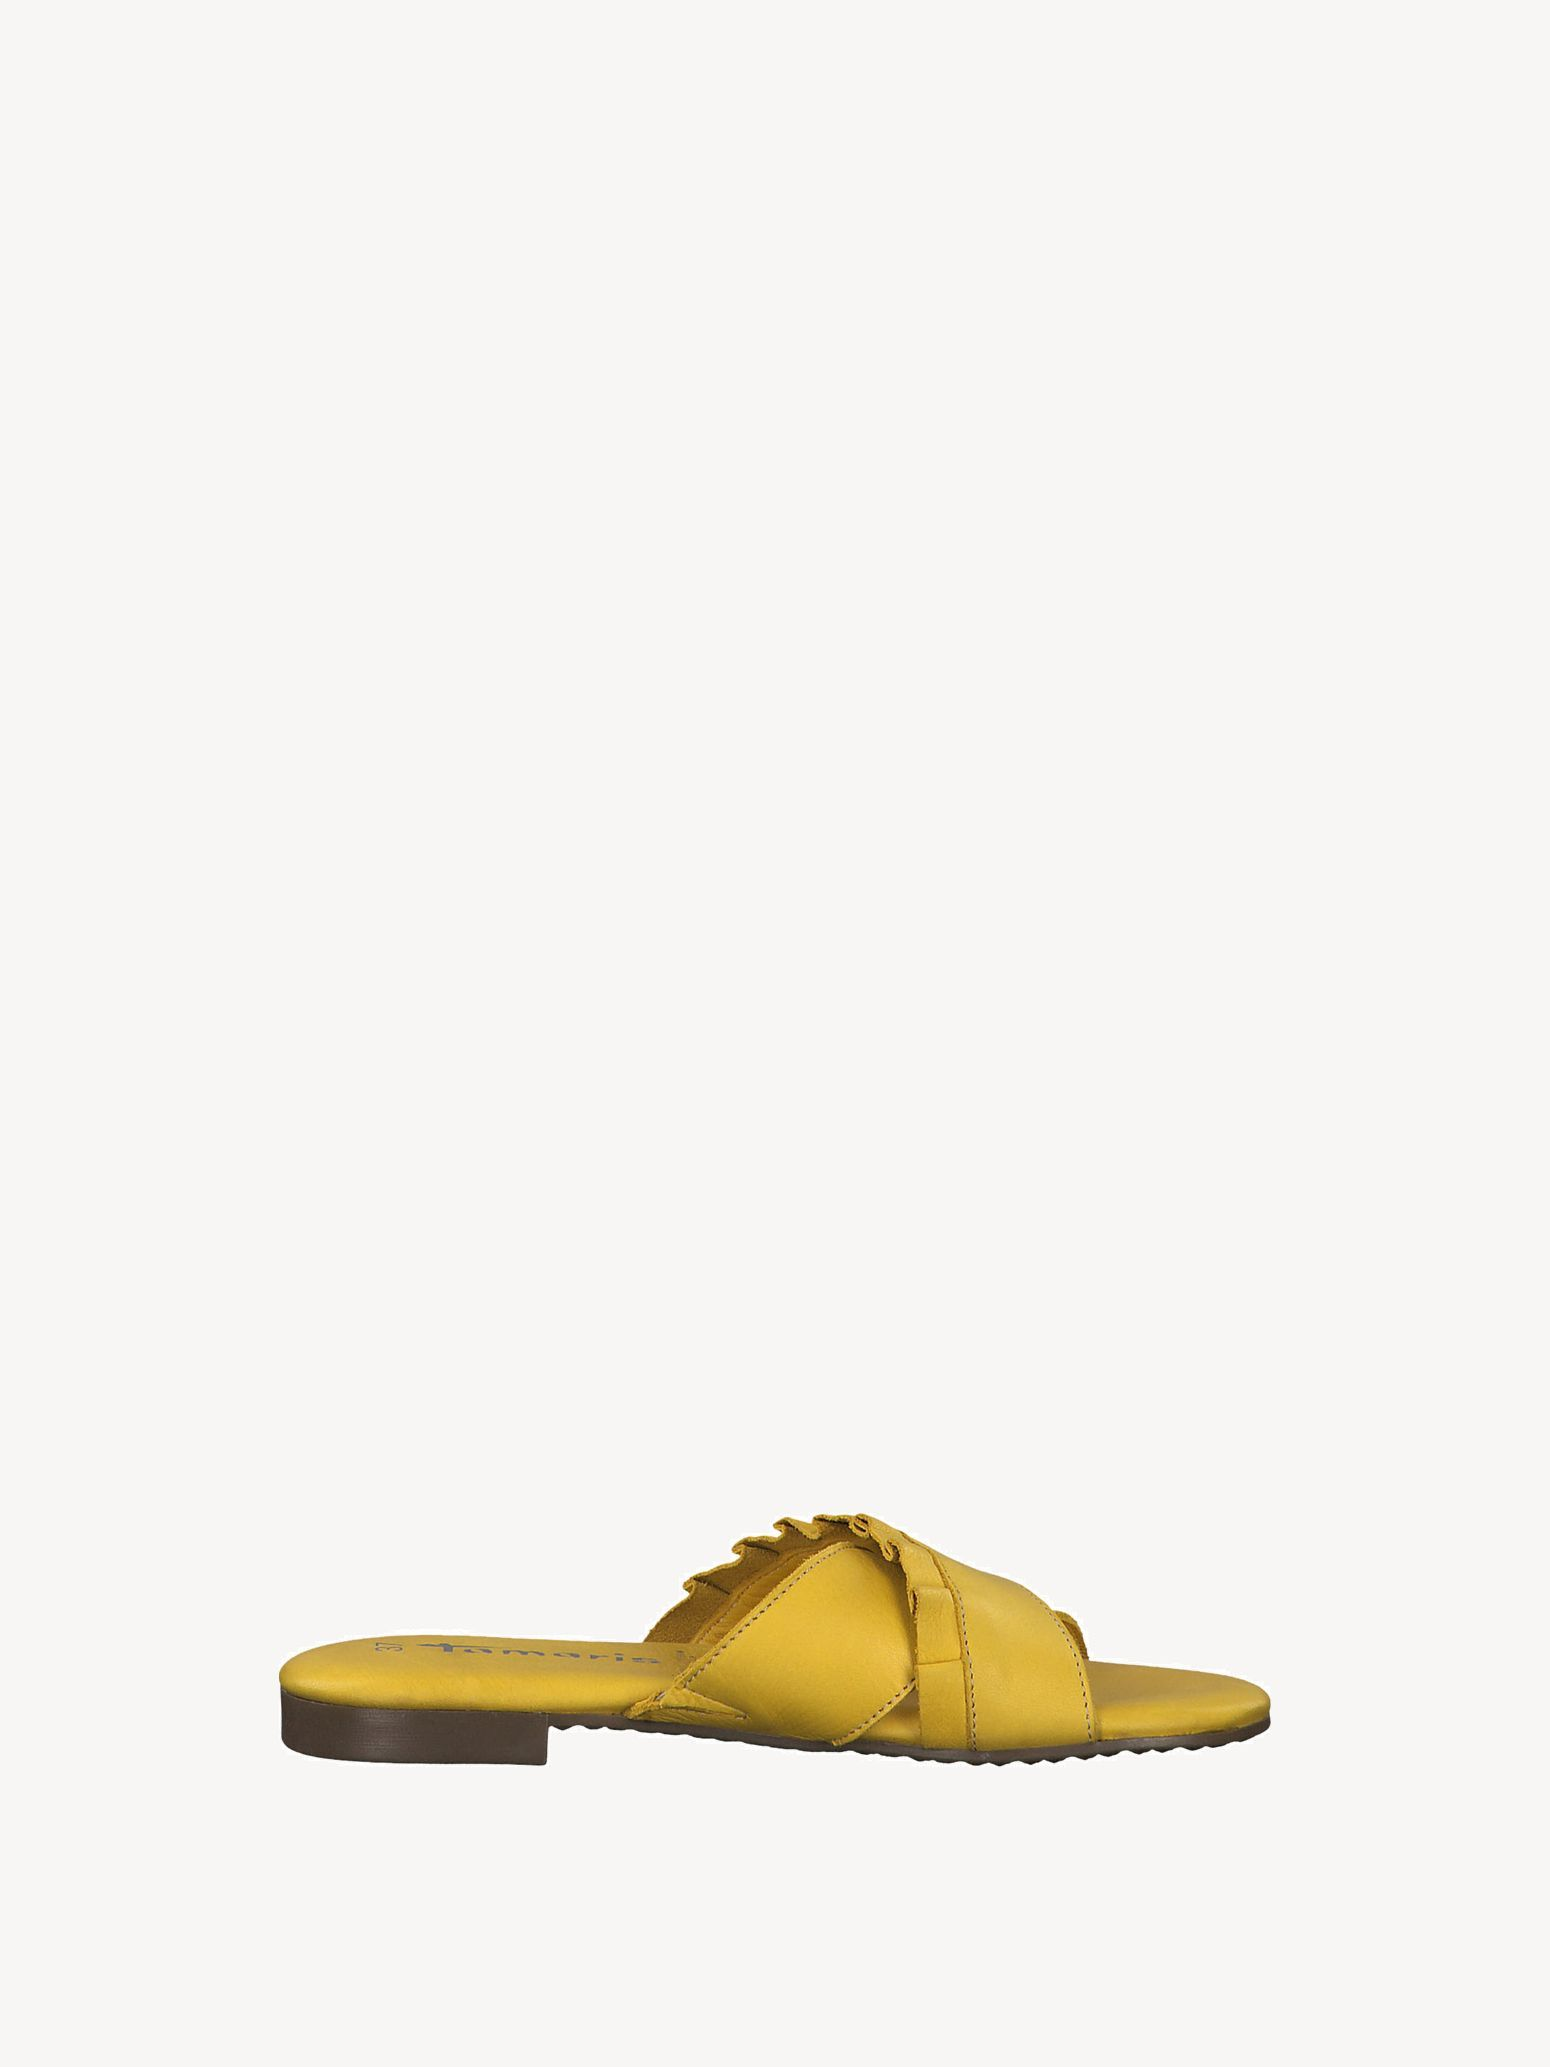 Leather Mule - yellow, SUN, hi-res